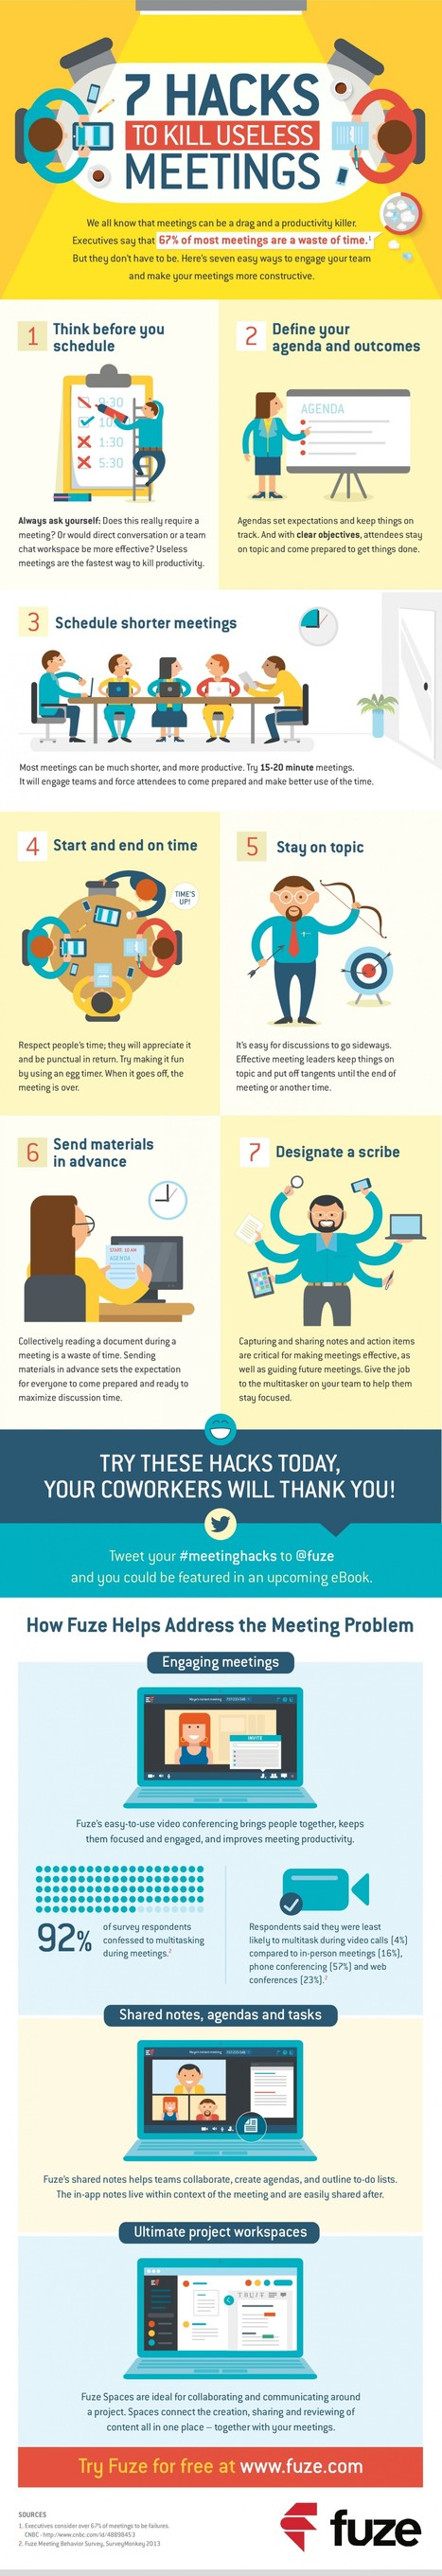 7 Hacks to Kill Useless Meetings - Infographic | Zentrum für multimediales Lehren und Lernen (LLZ) | Scoop.it